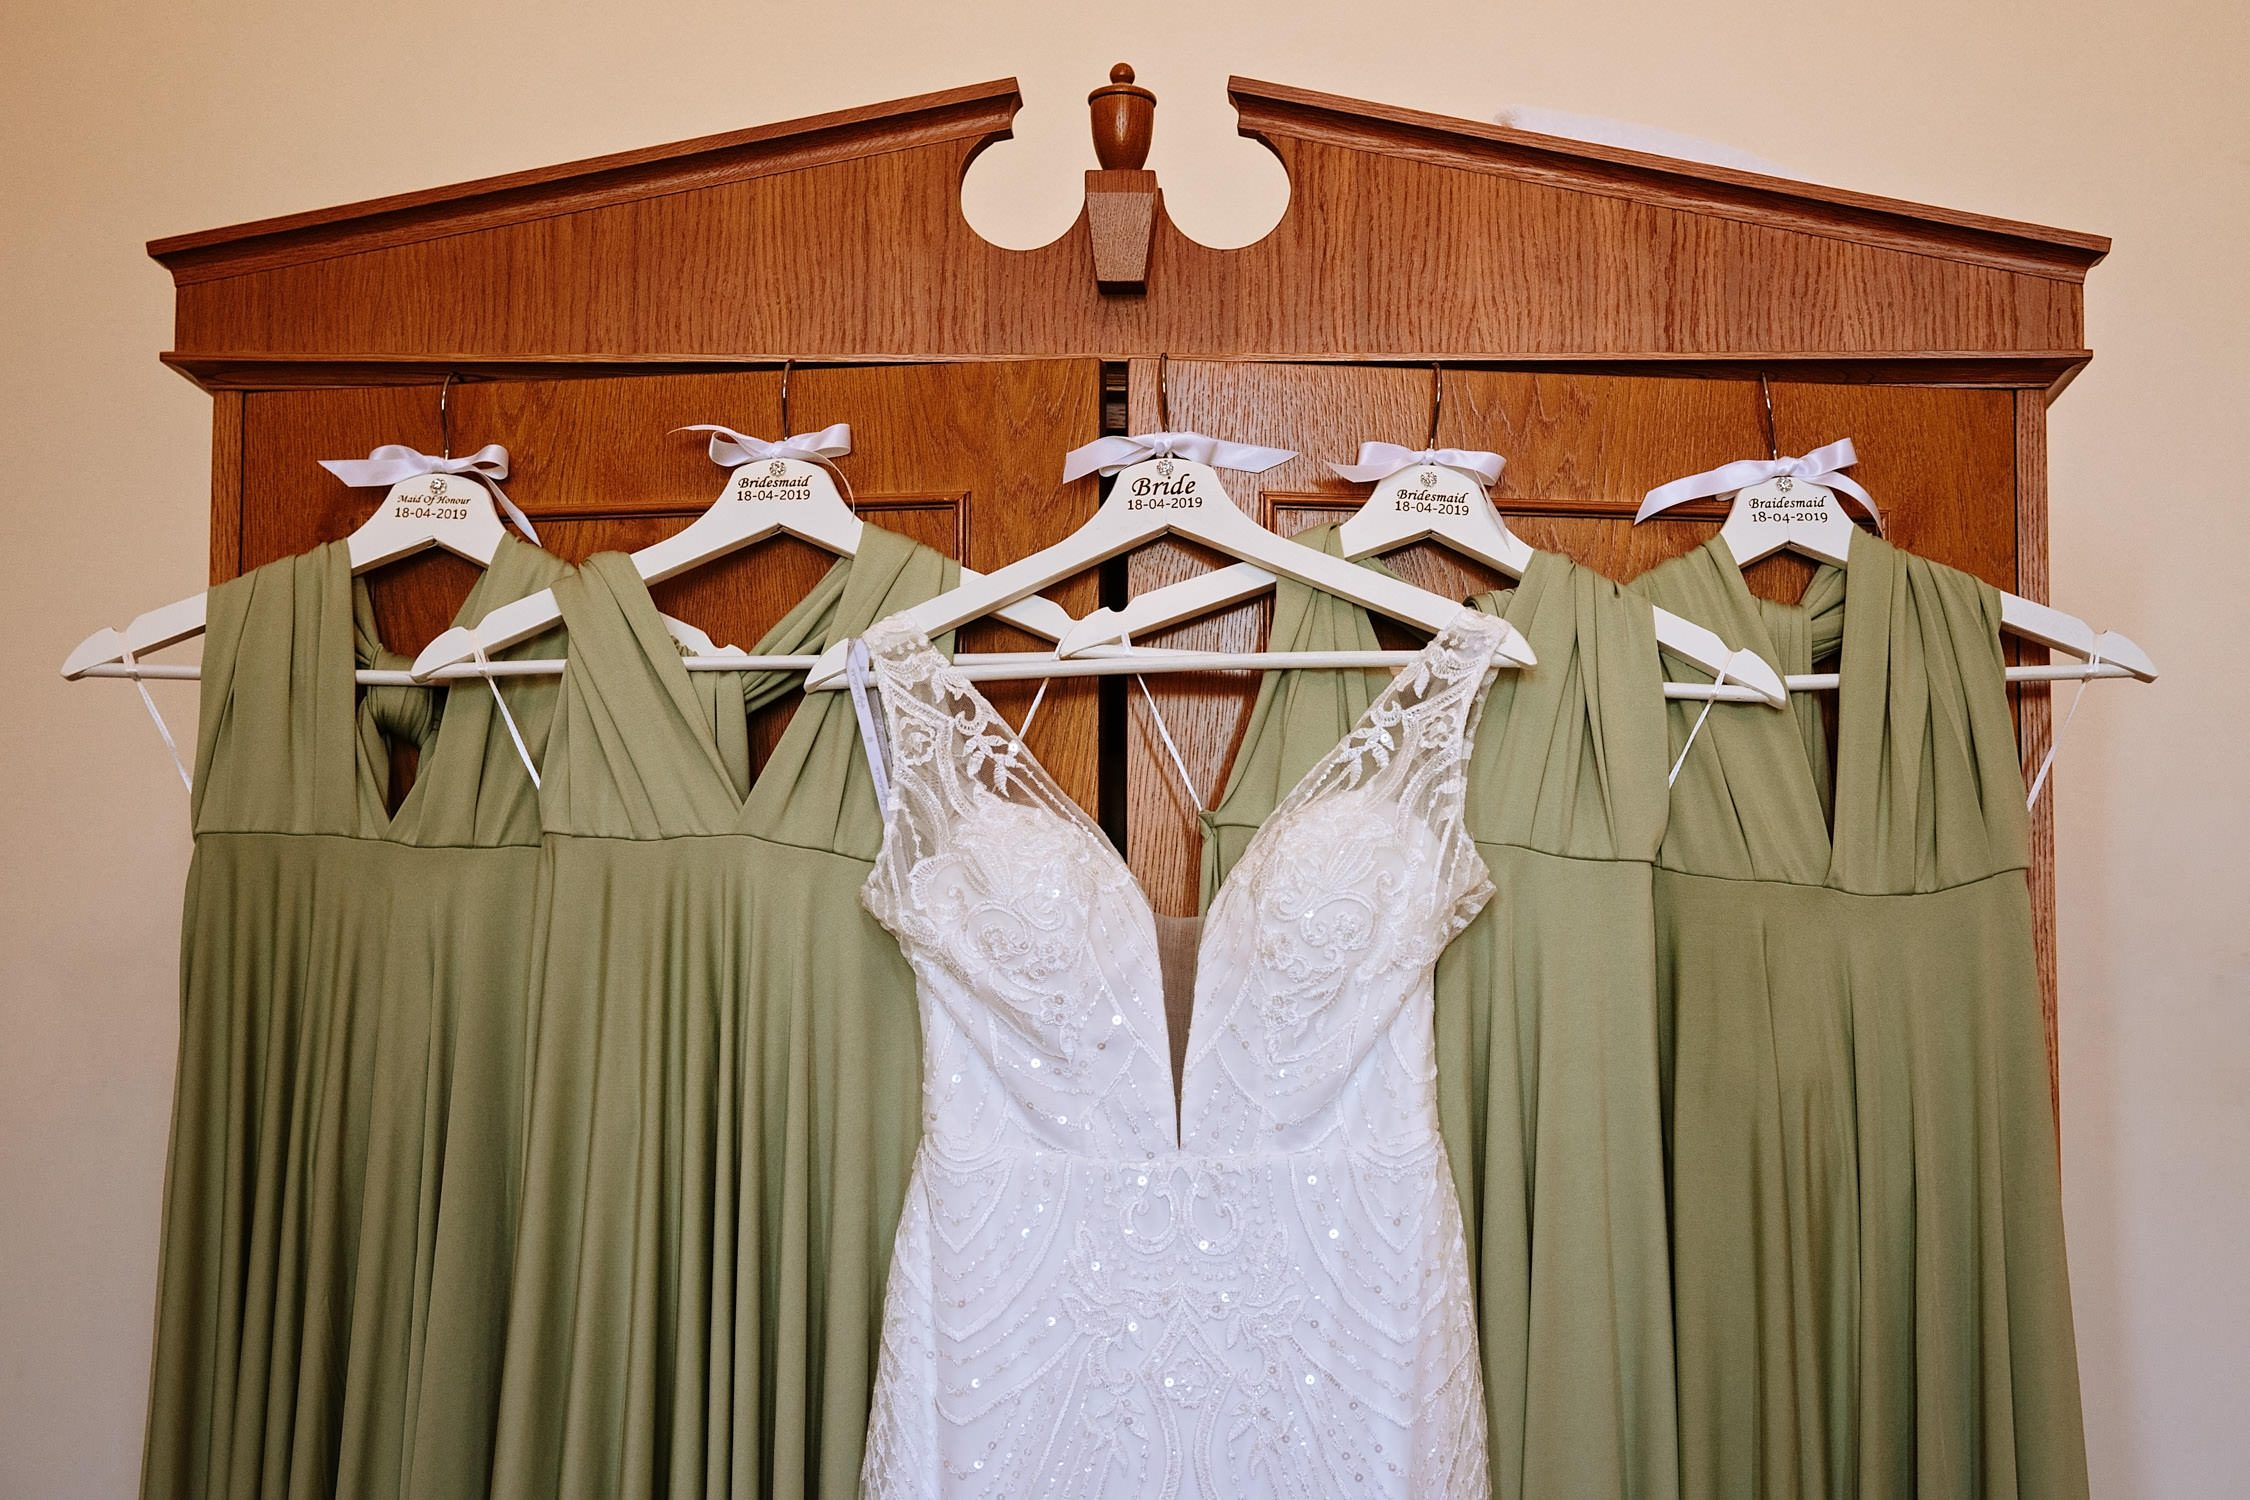 all the bridal dresses together